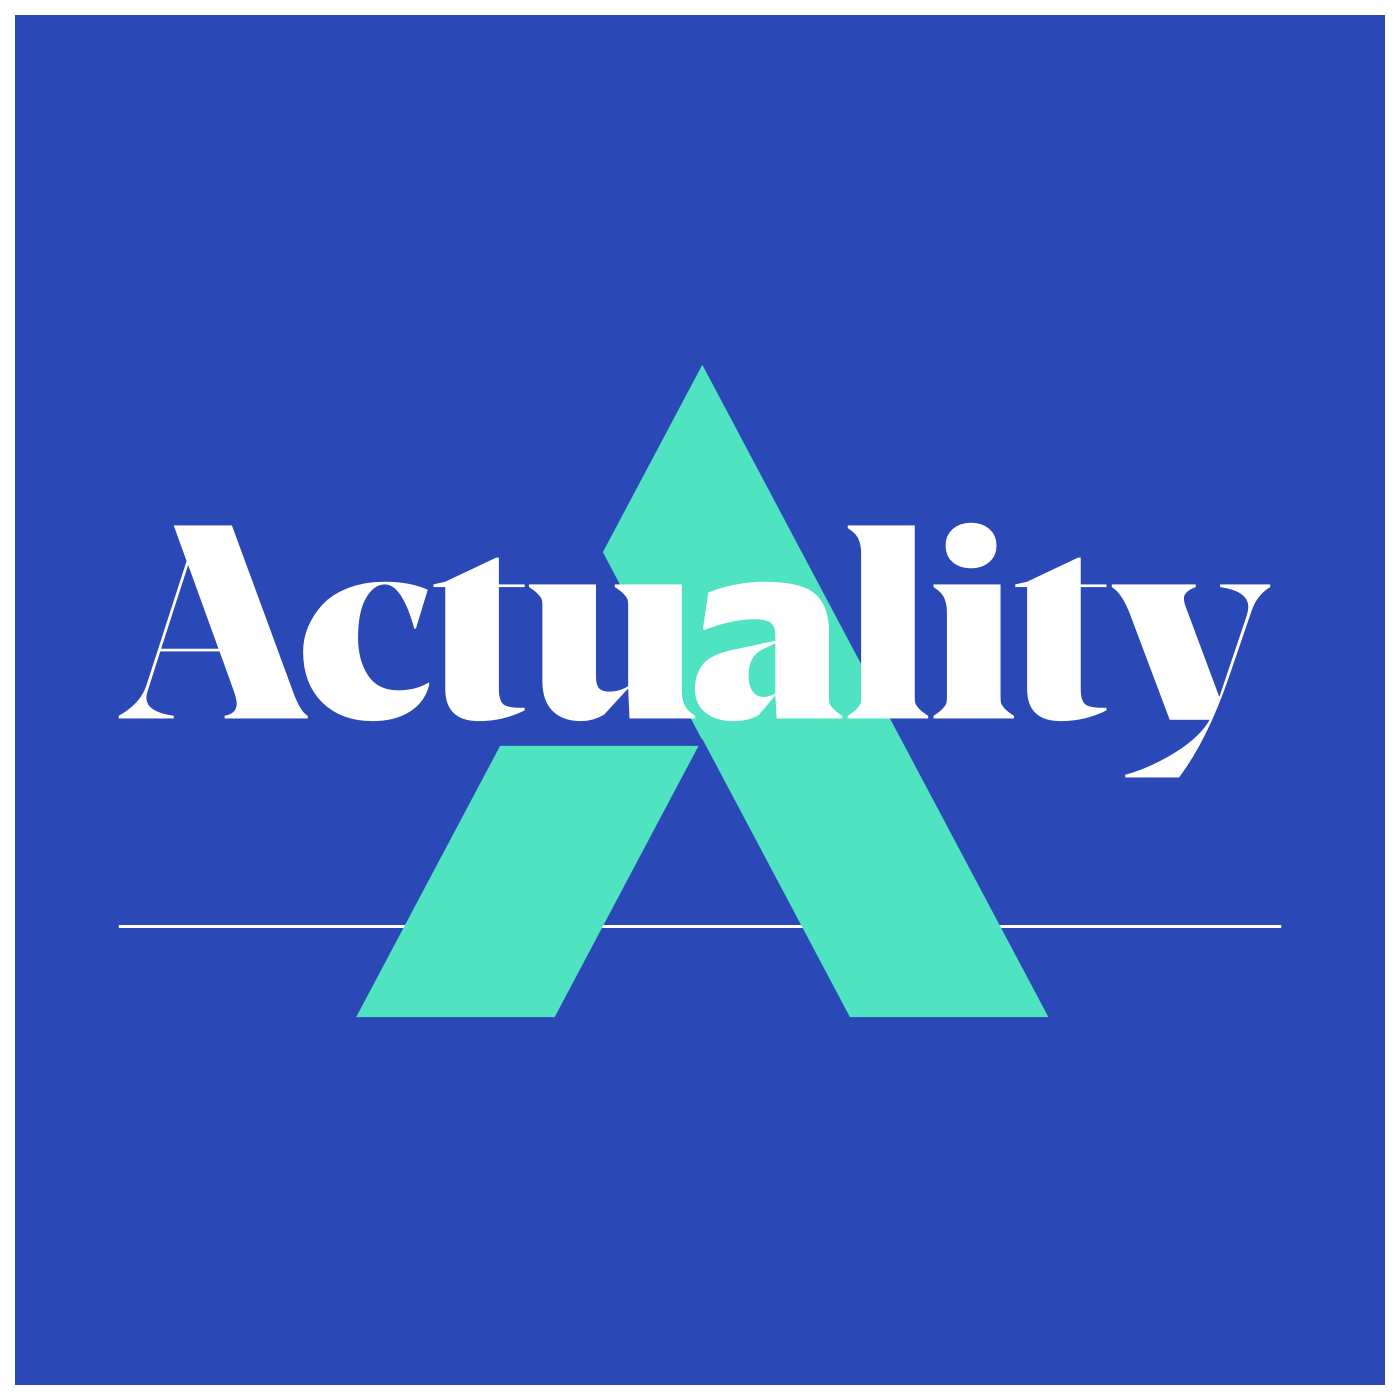 Actuality podcast logo.